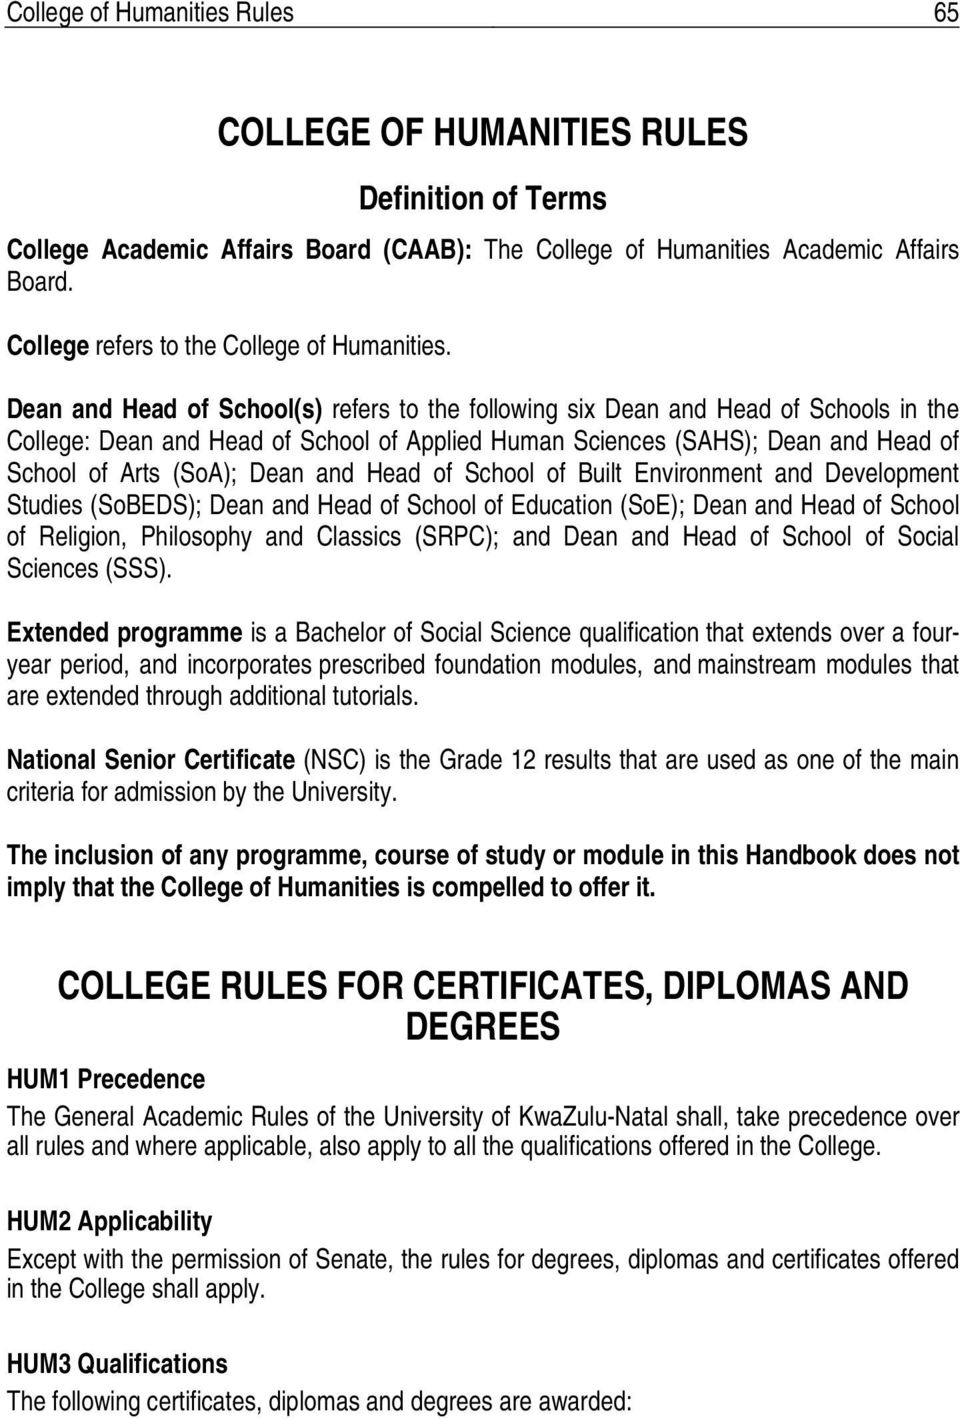 Dean and Head of School(s) refers to the following six Dean and Head of Schools in the College: Dean and Head of School of Applied Human Sciences (SAHS); Dean and Head of School of Arts (SoA); Dean